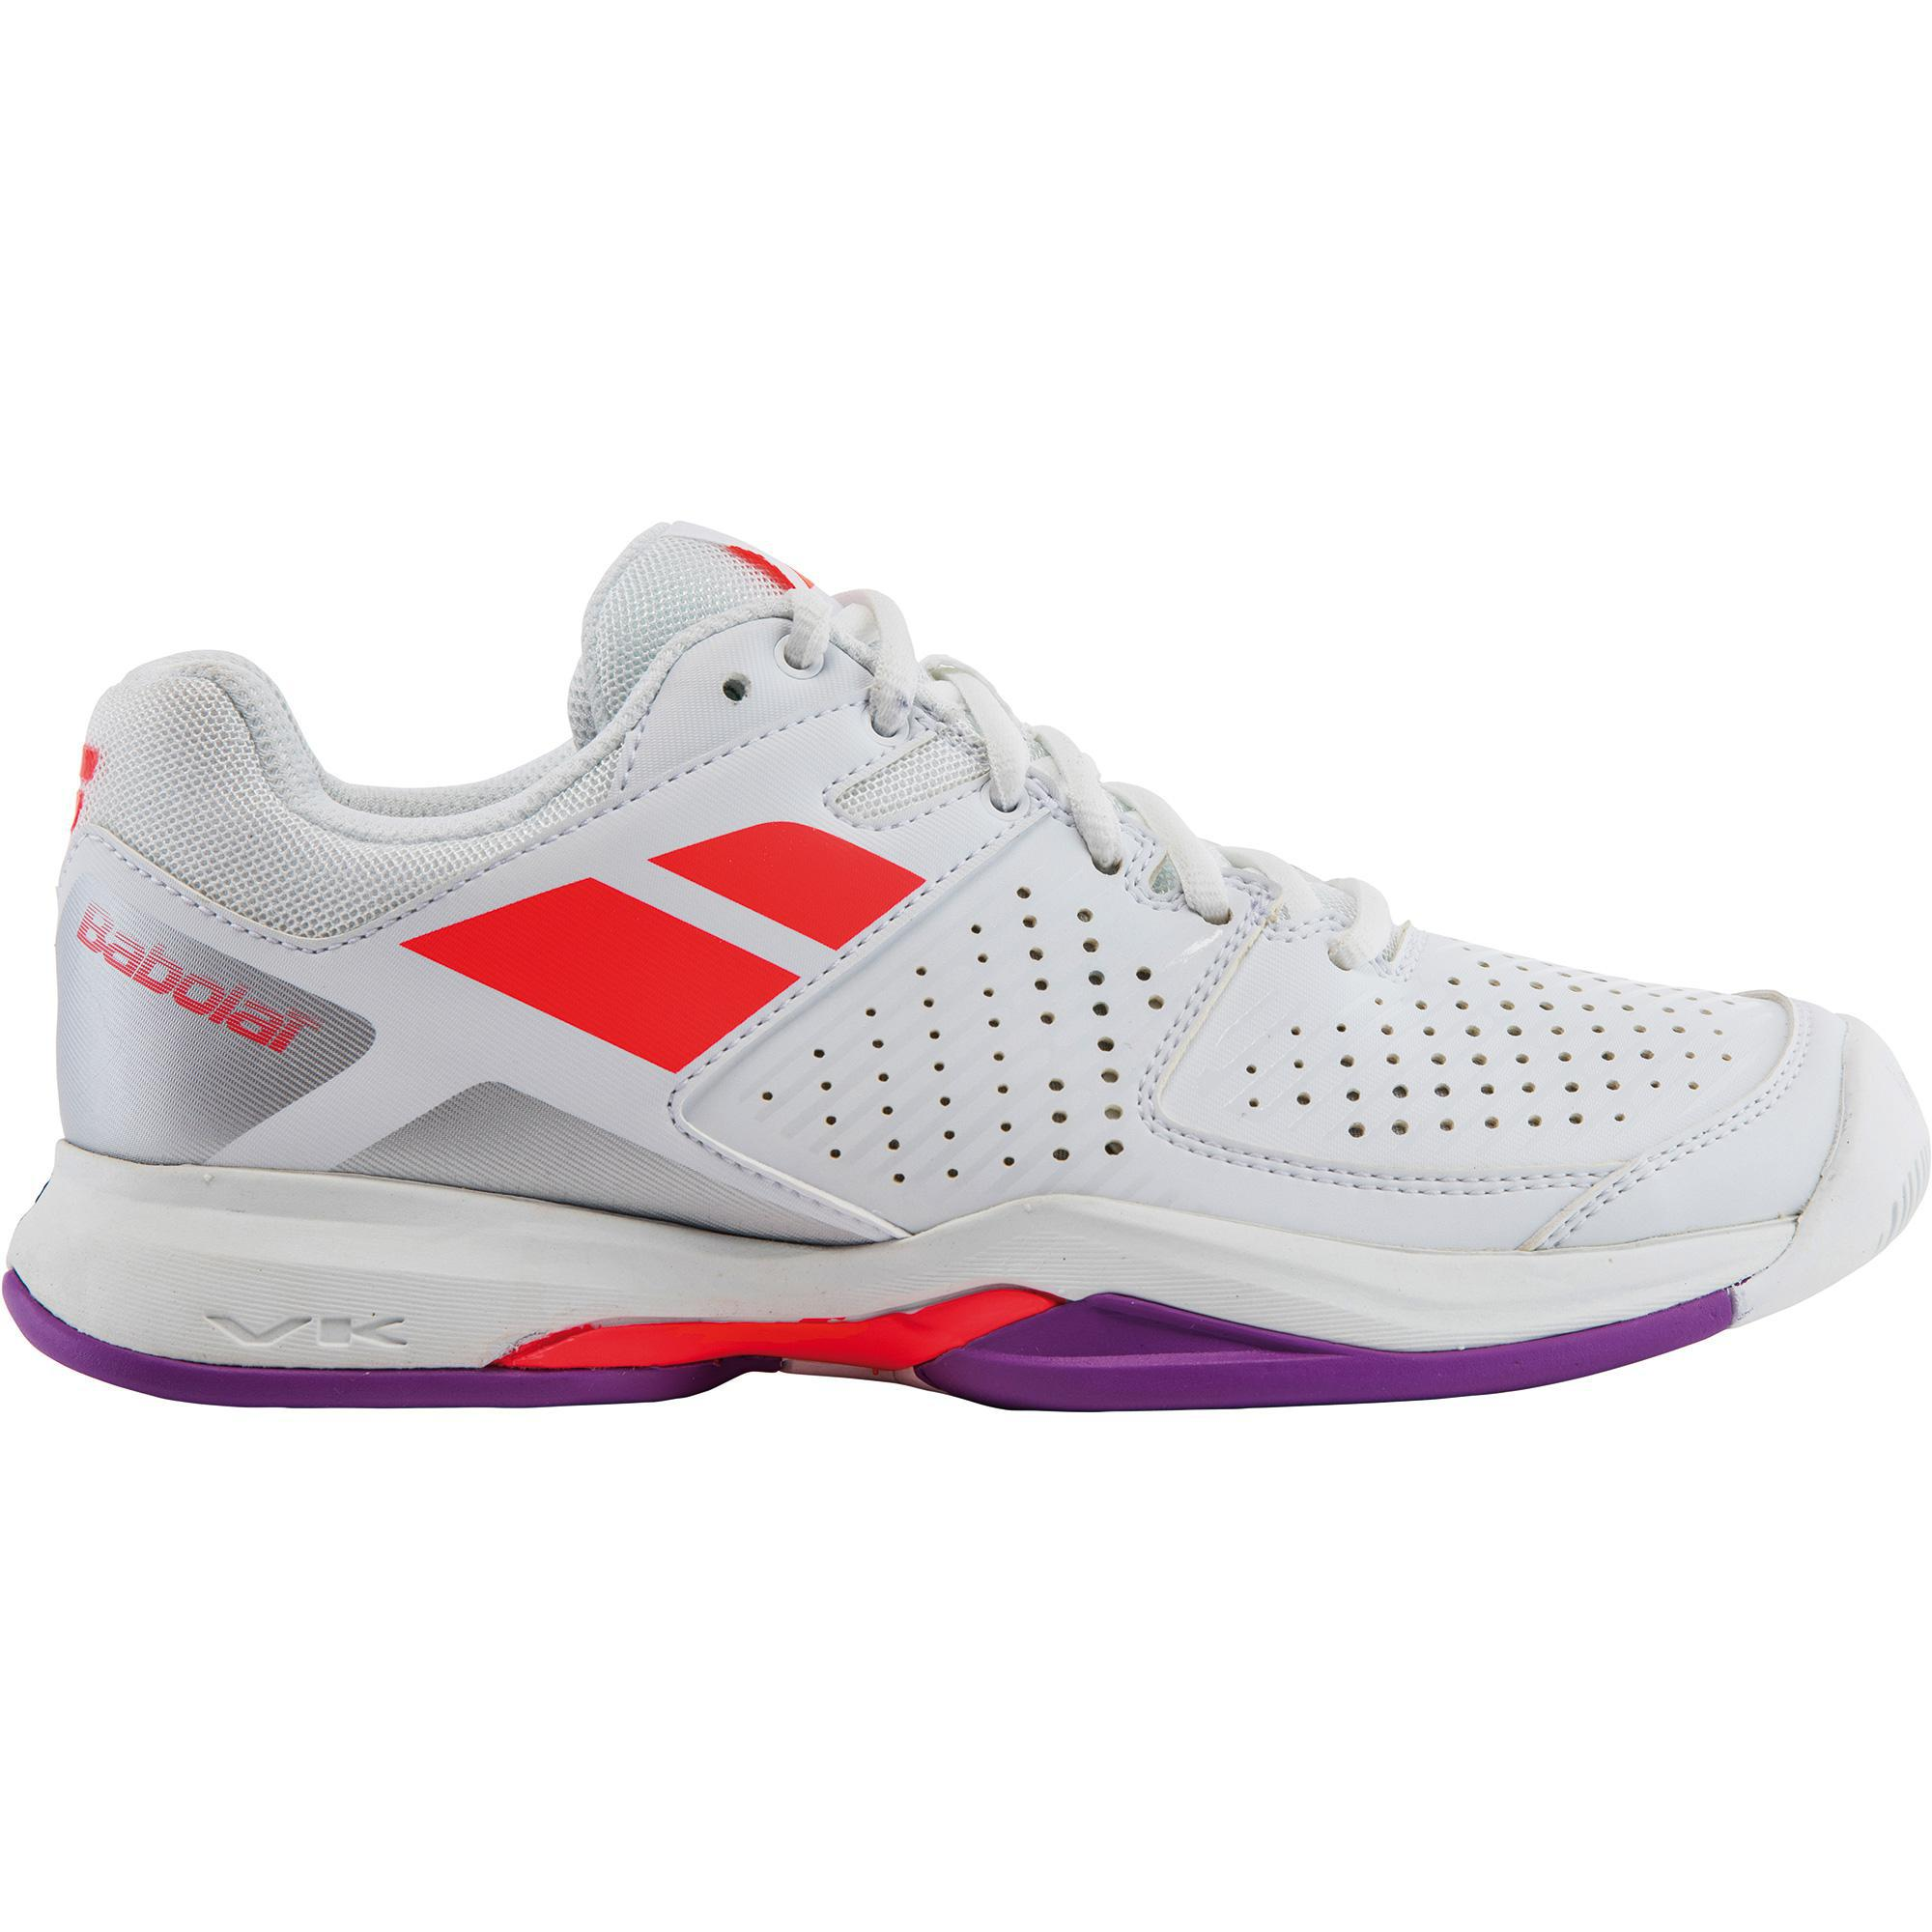 Babolat Tennis Shoes >> Babolat Pulsion Womens Tennis Shoes